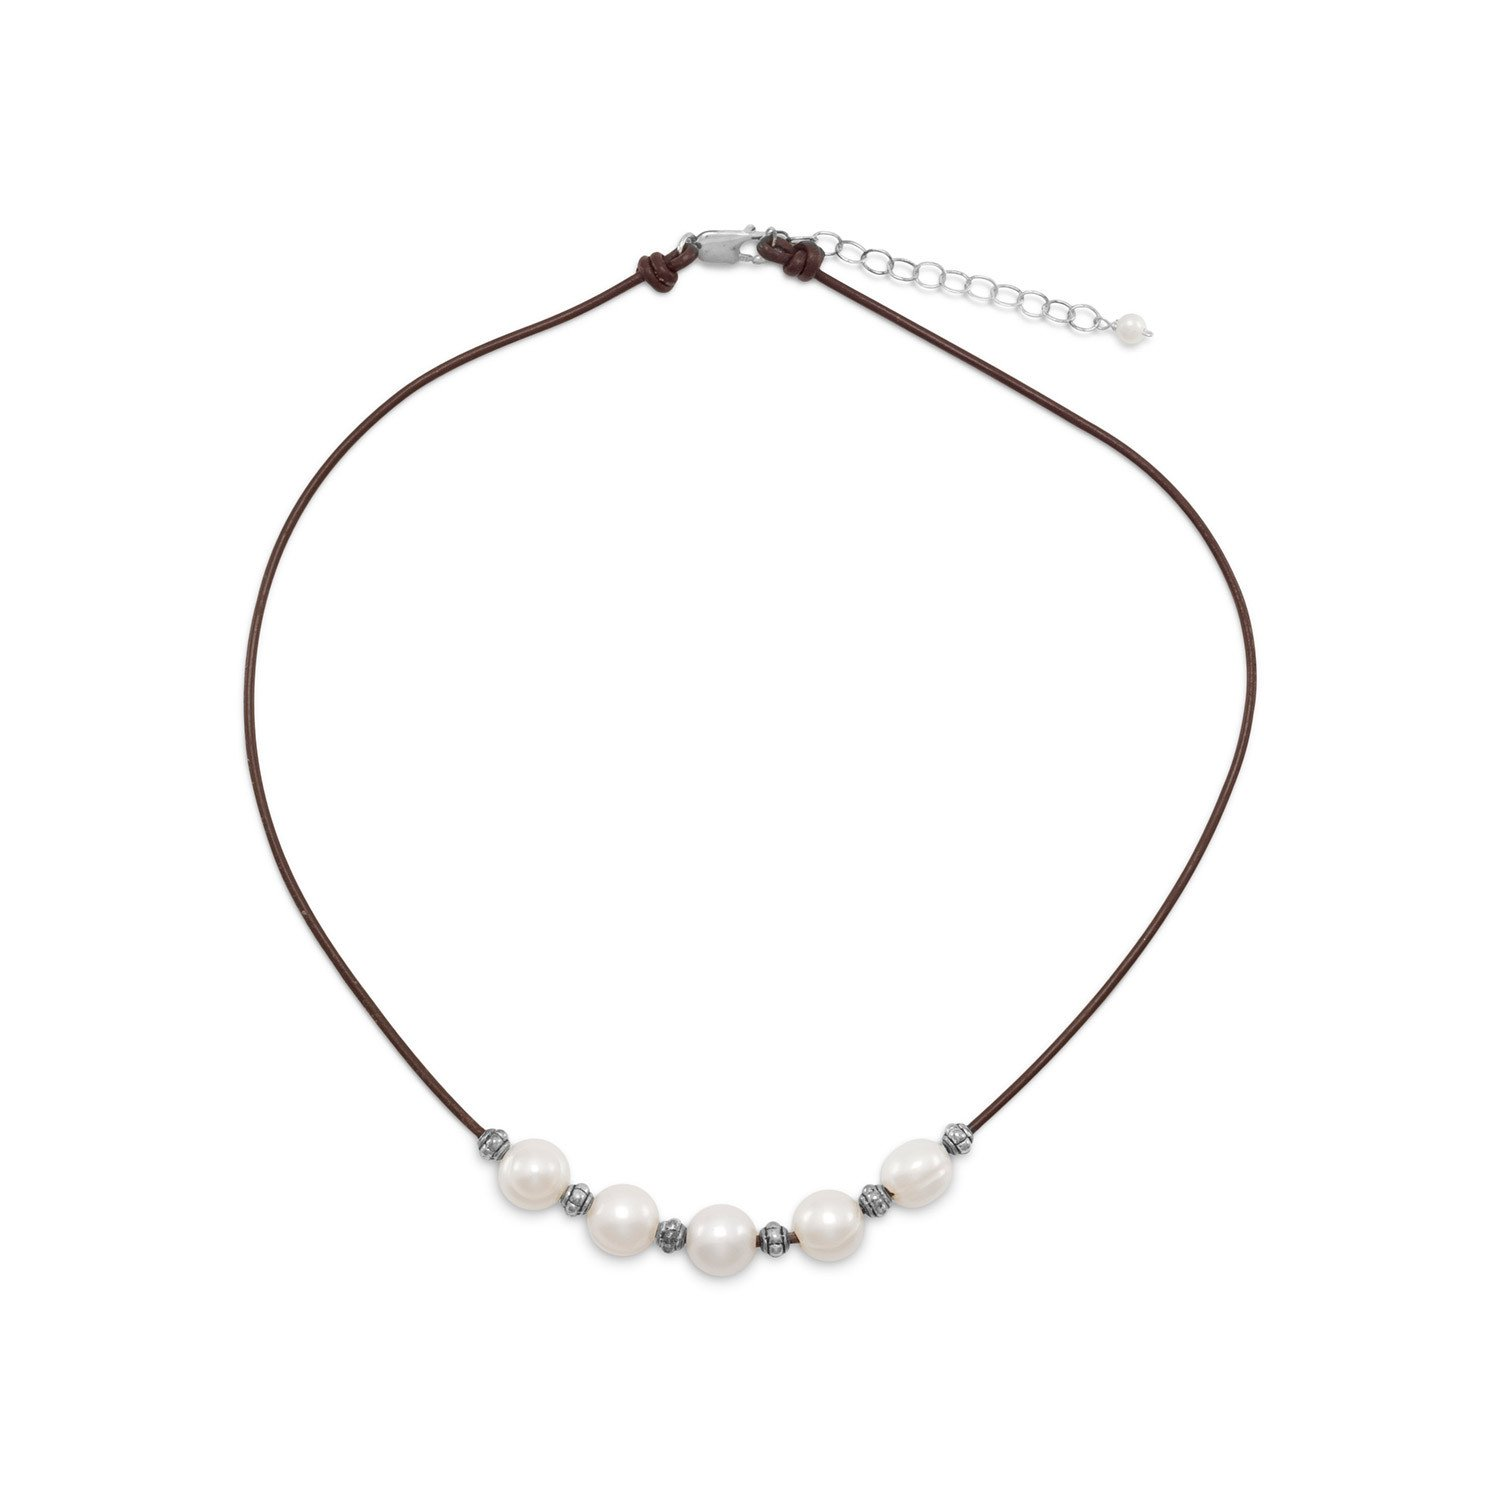 16″+2″ Leather and Cultured Freshwater Pearl Necklace